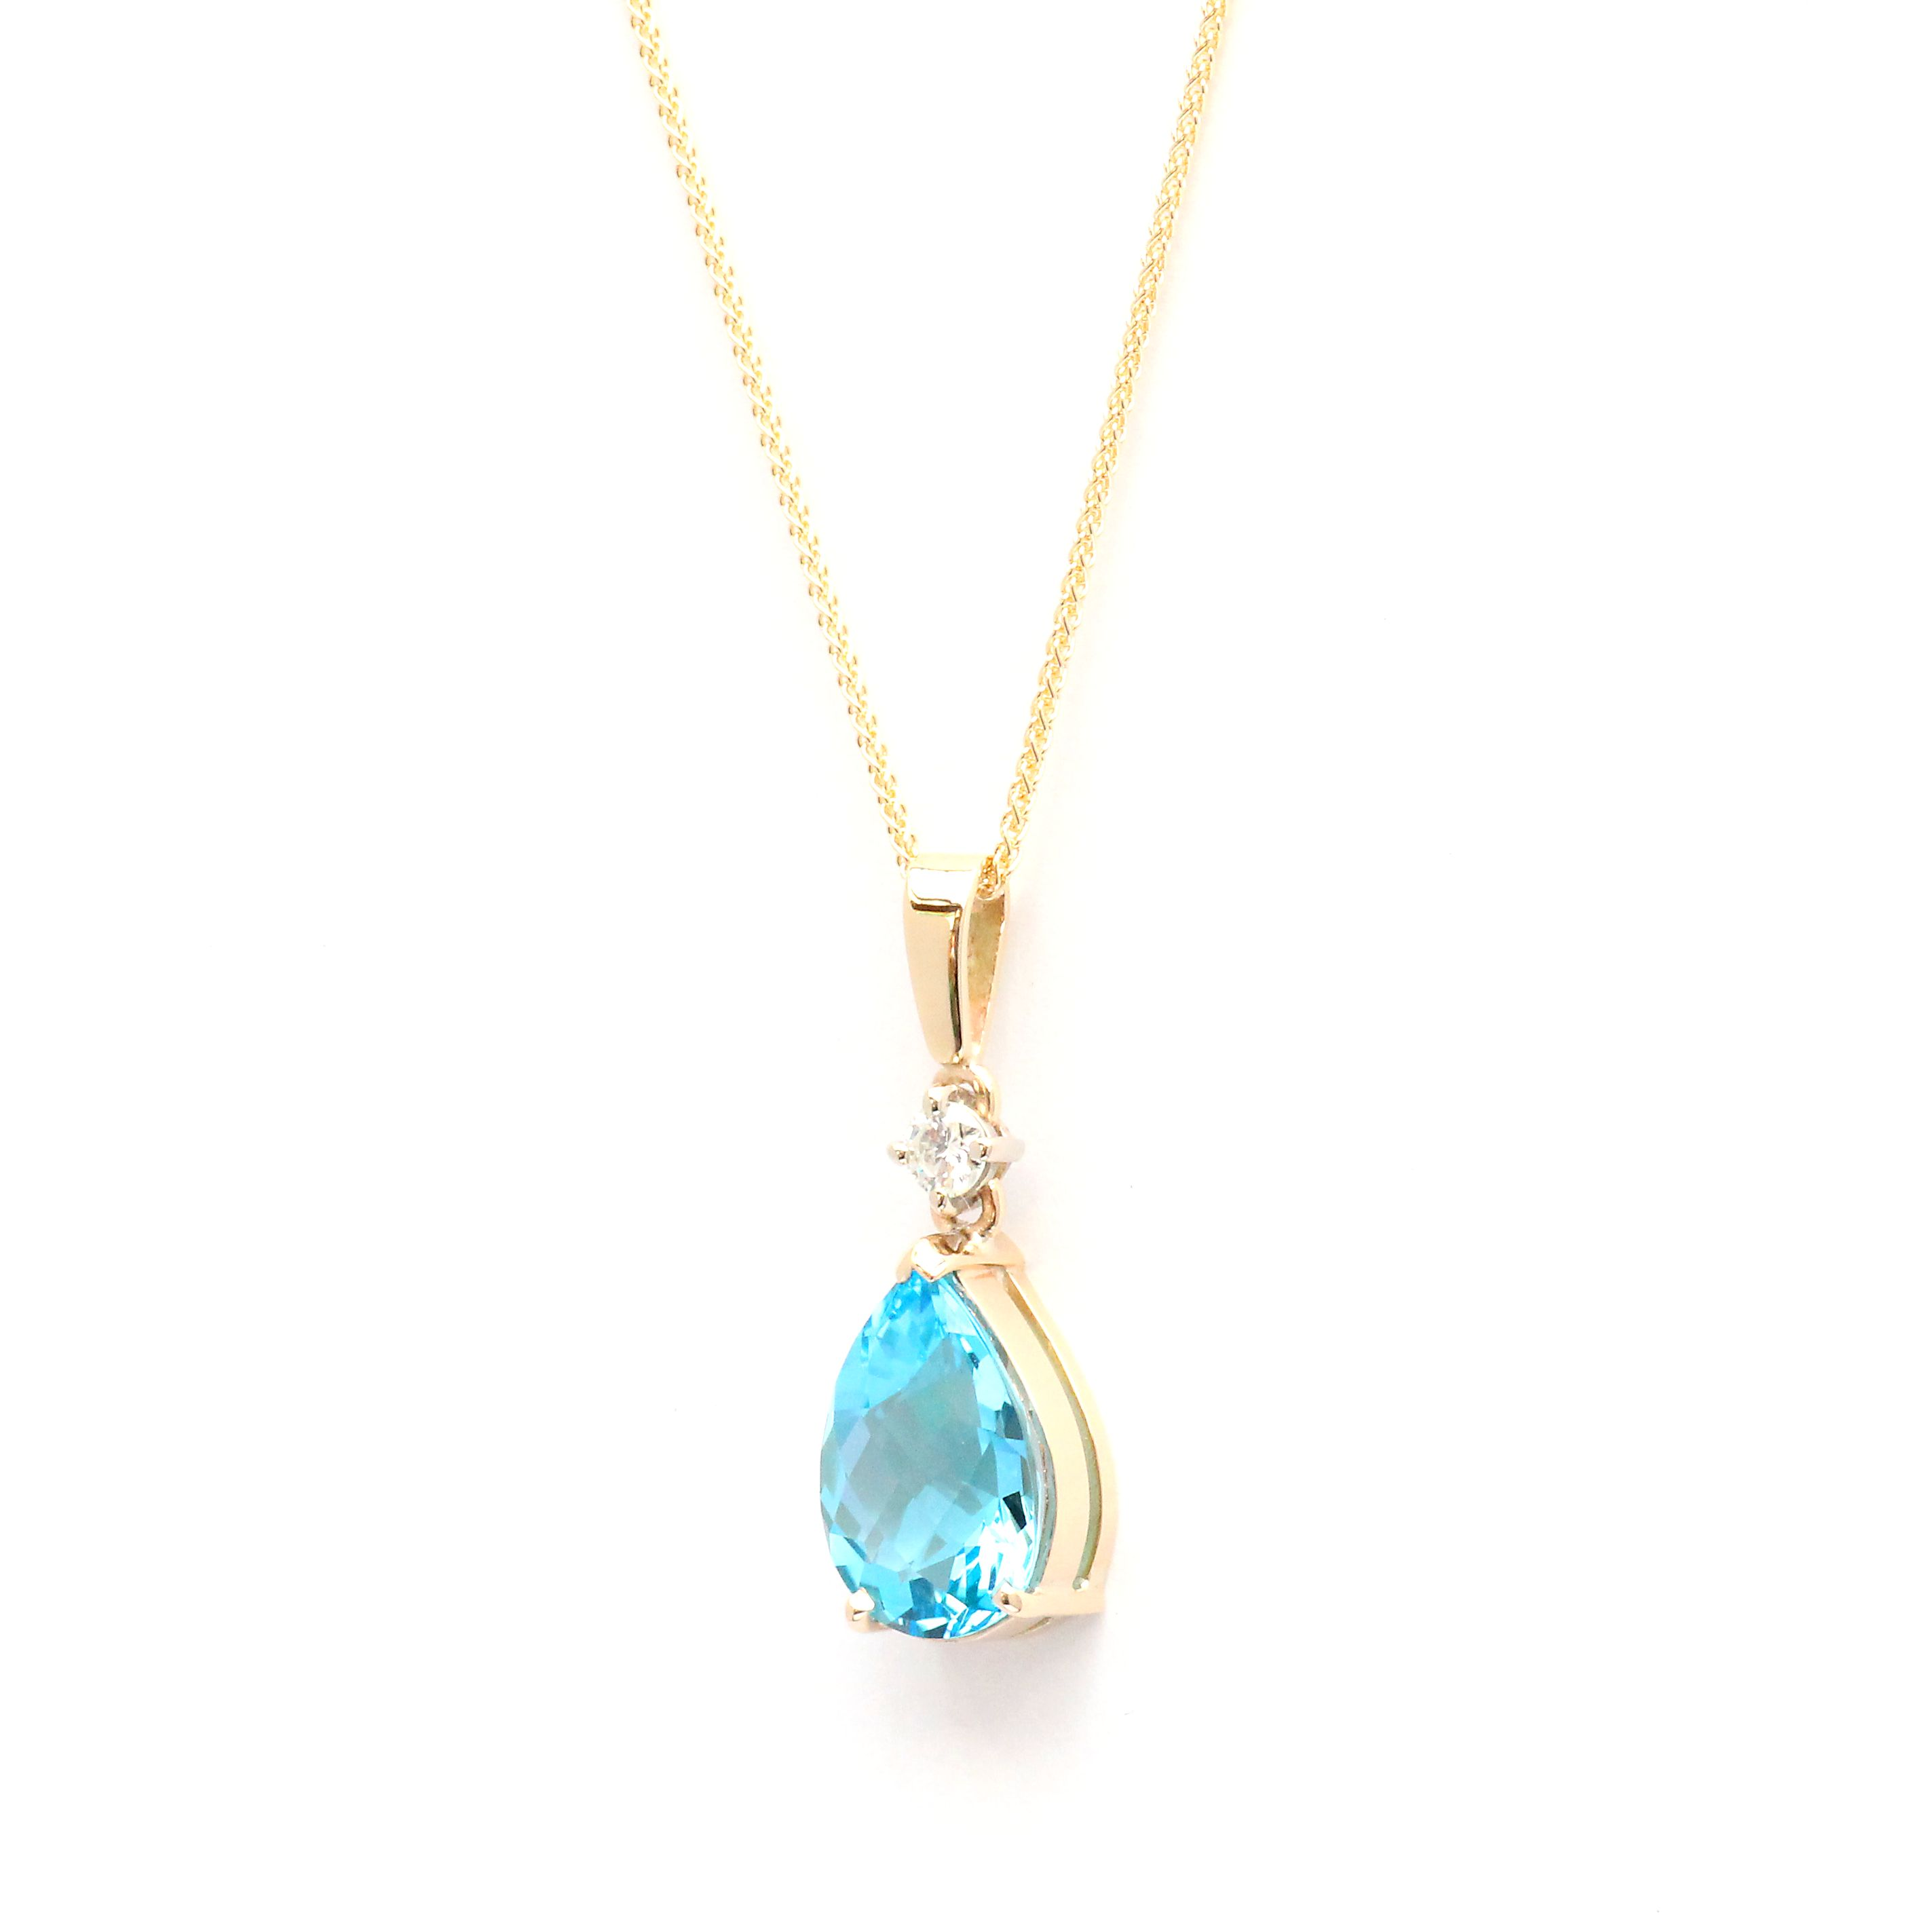 mar pm teardrop necklace product photo topaz pendant